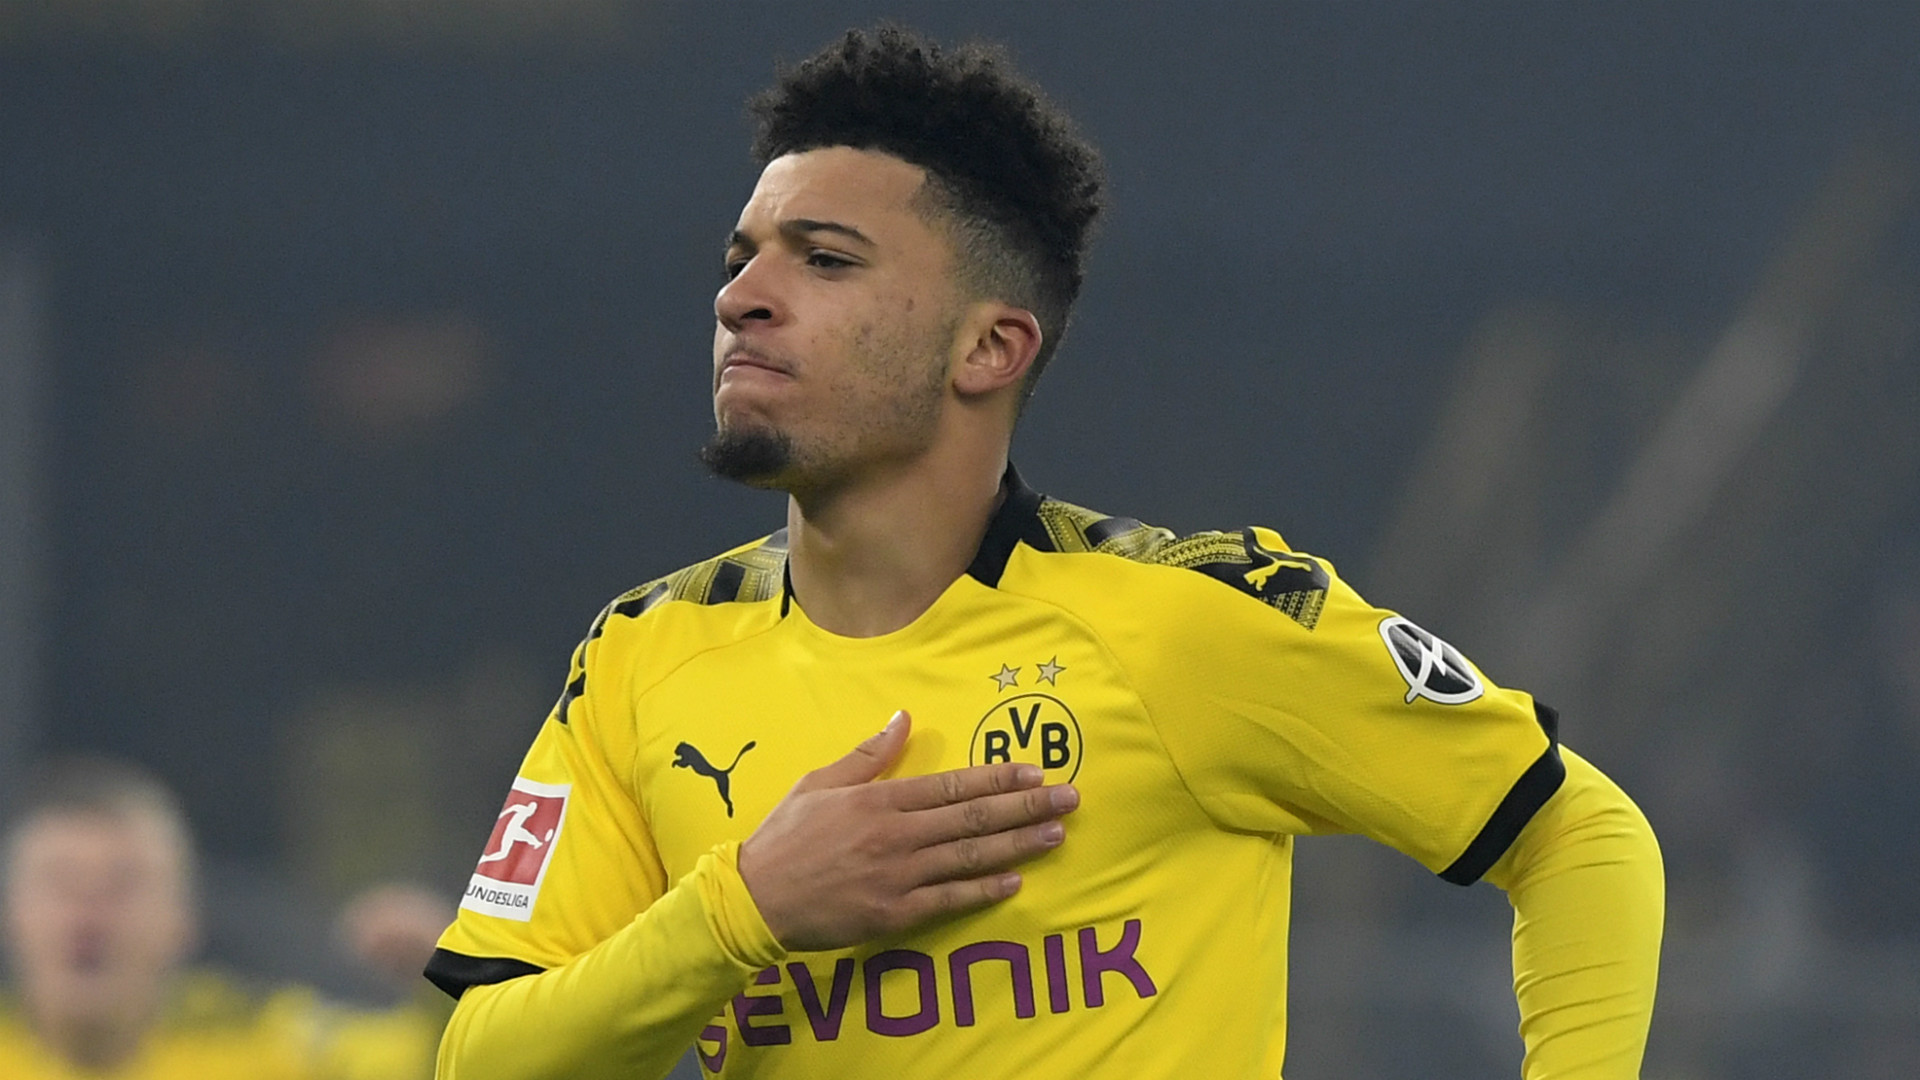 'Sancho is like Ronaldo, he makes the game easier for others' - Dortmund star 'would be a brilliant signing' for Man Utd, says Brown